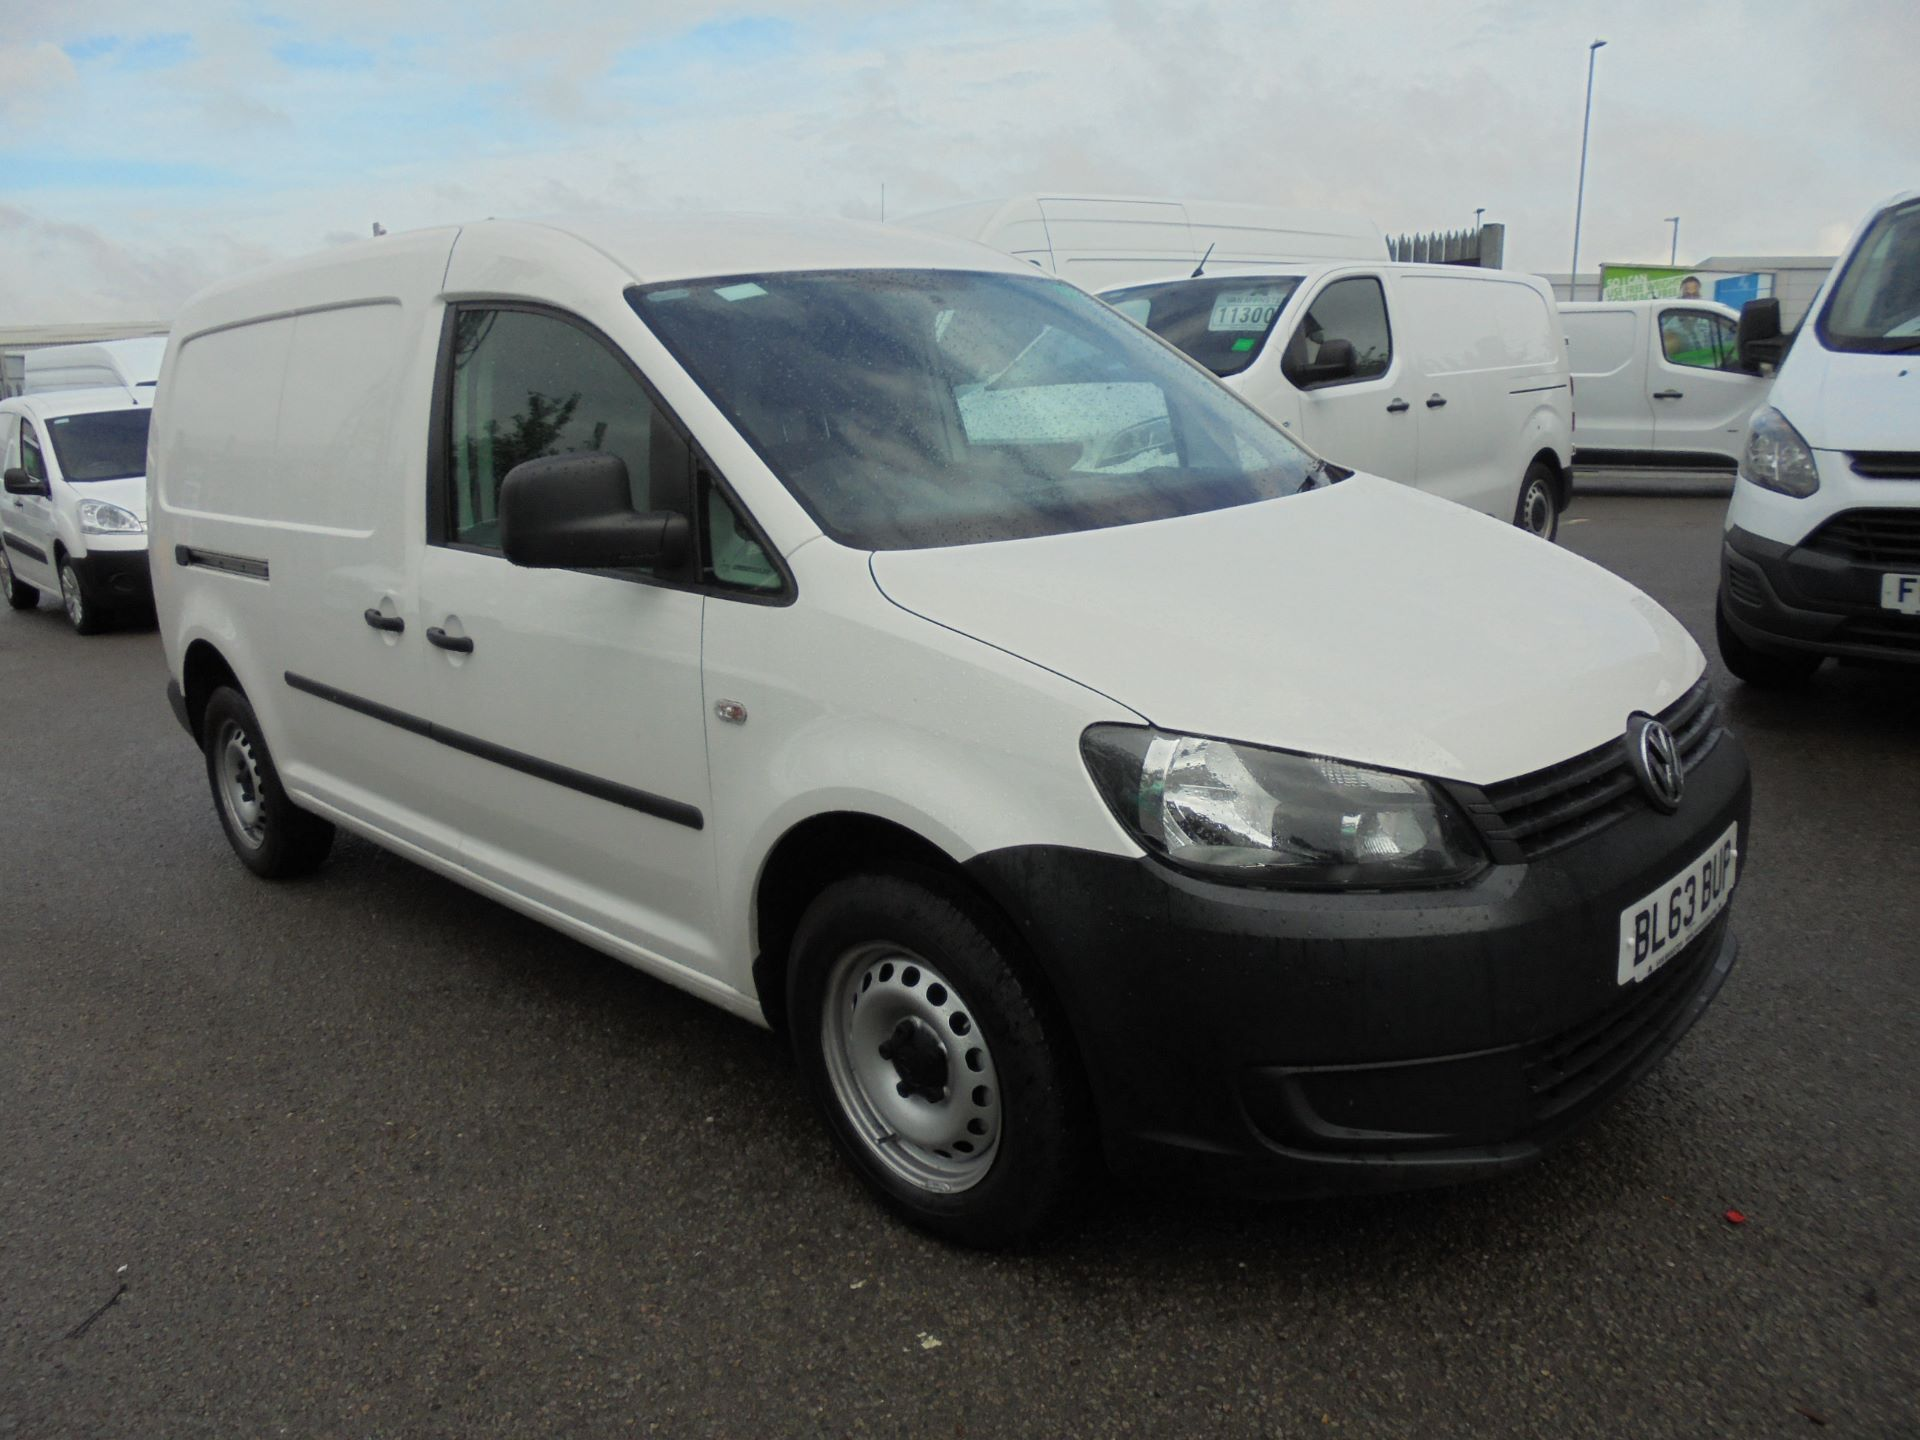 2014 Volkswagen Caddy Maxi 1.6 BLUEMOTION 102PS STARTLINE EURO 5 (BL63BUP)